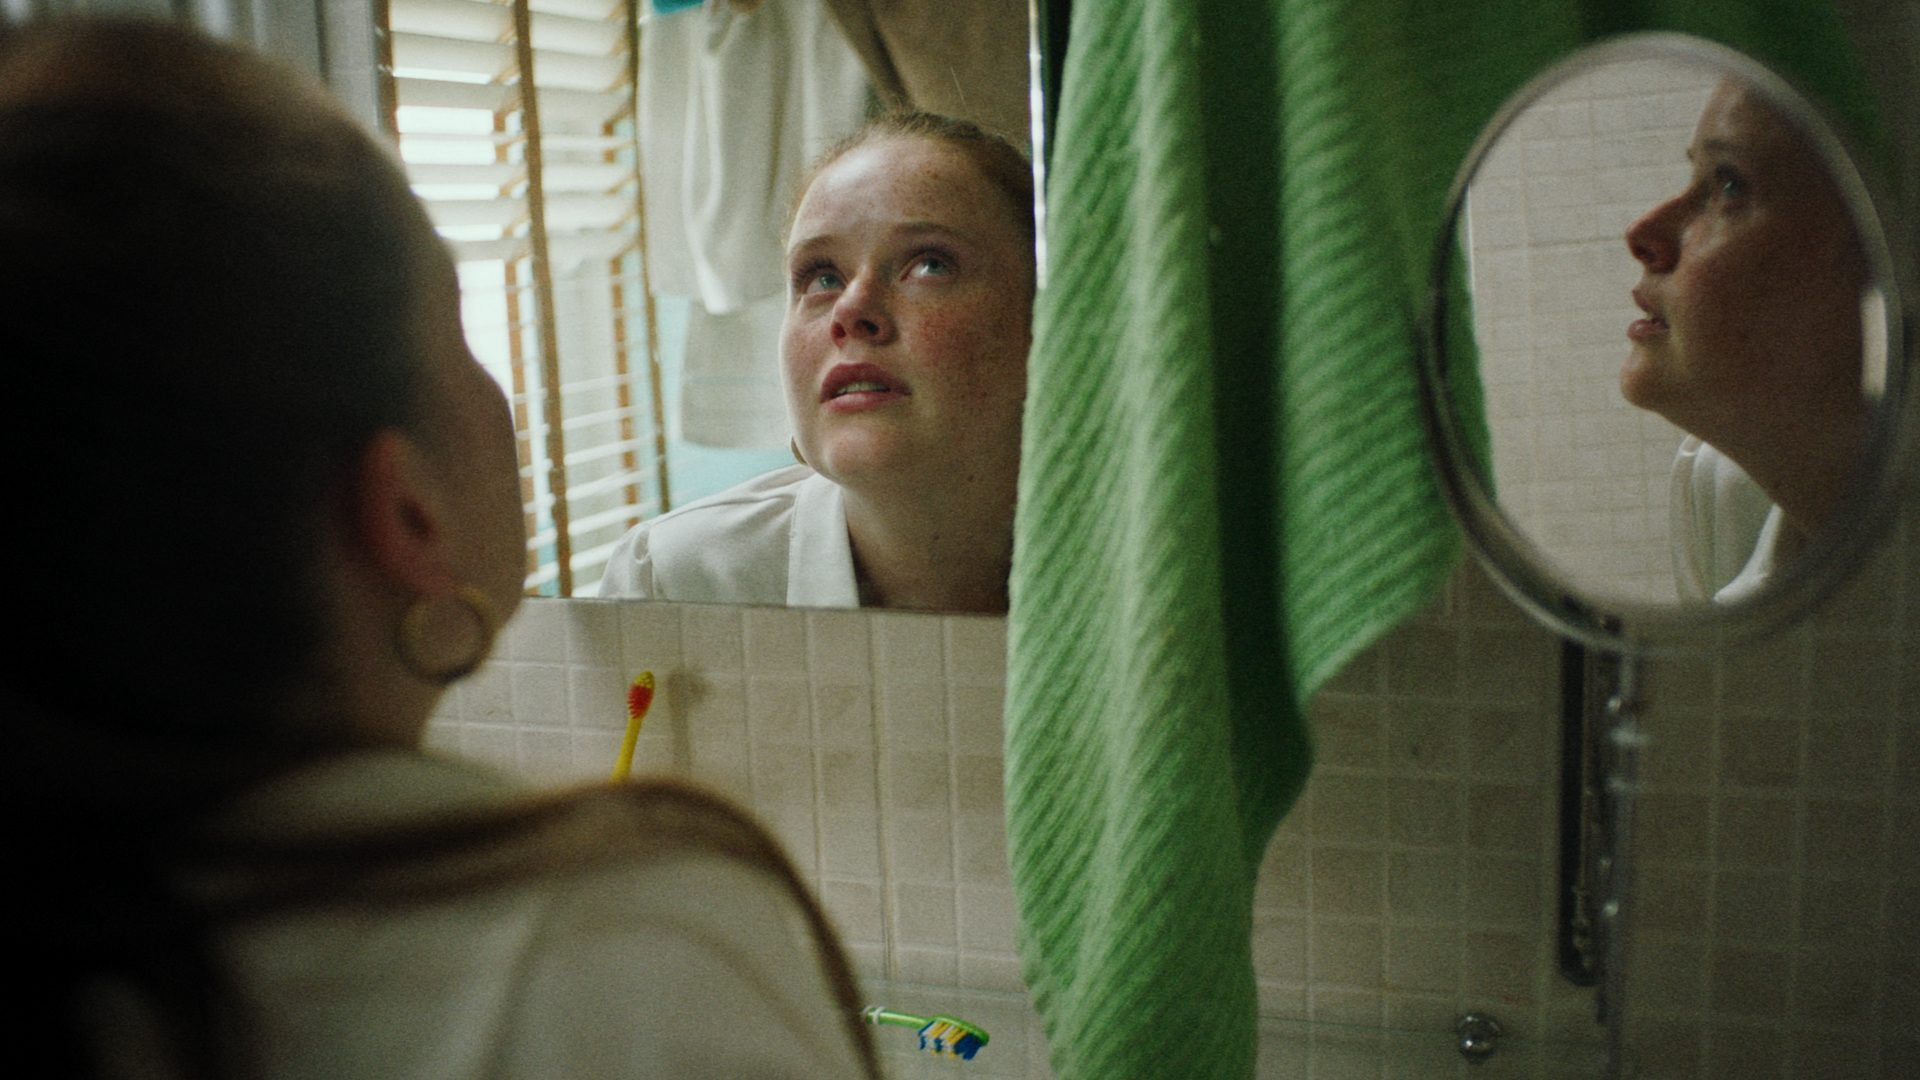 Freedom_For_Girls_Absent_CLEAN_Still_9